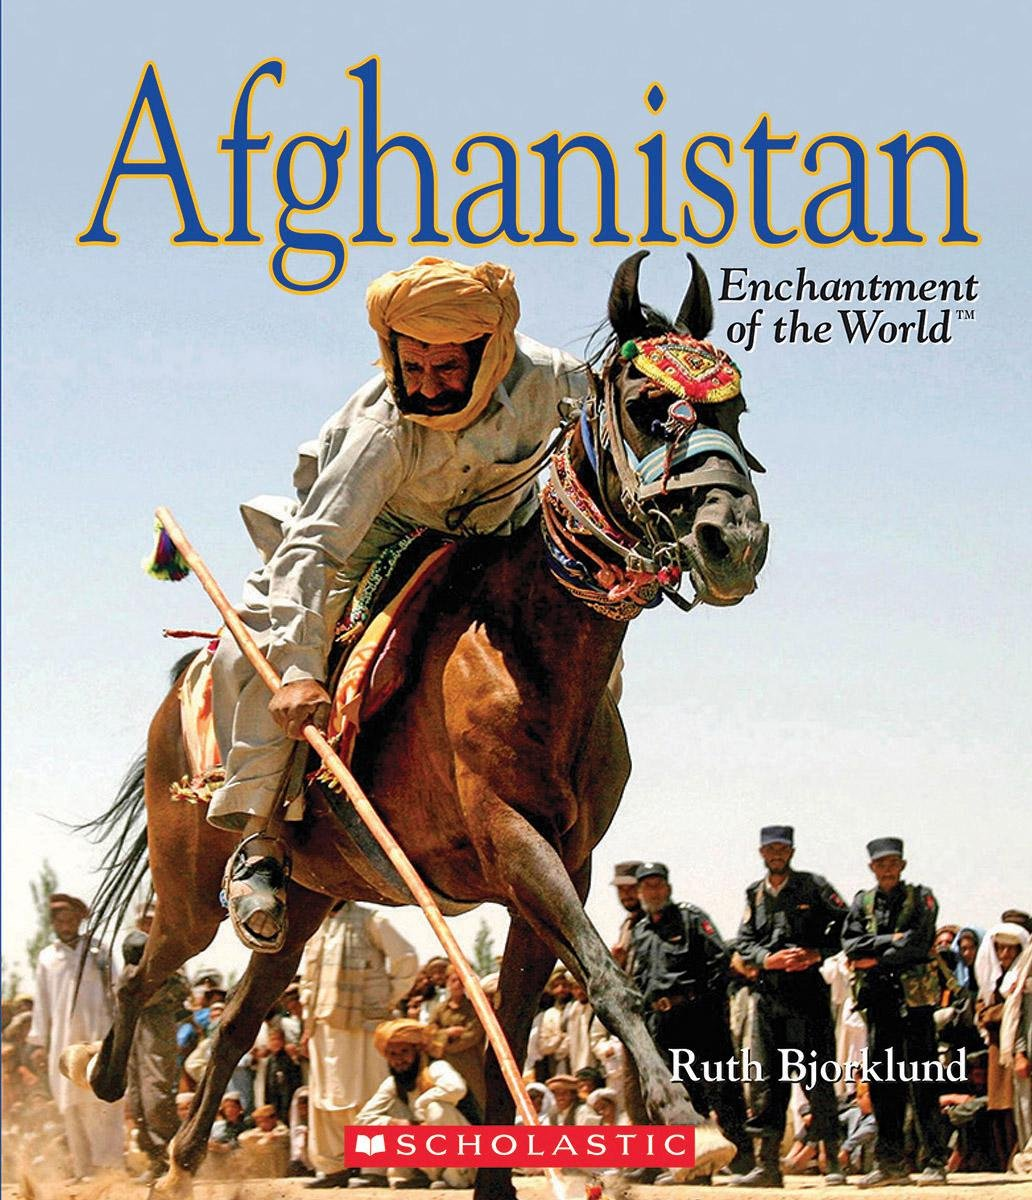 Afghanistan (Enchantment of the World, Second Series)